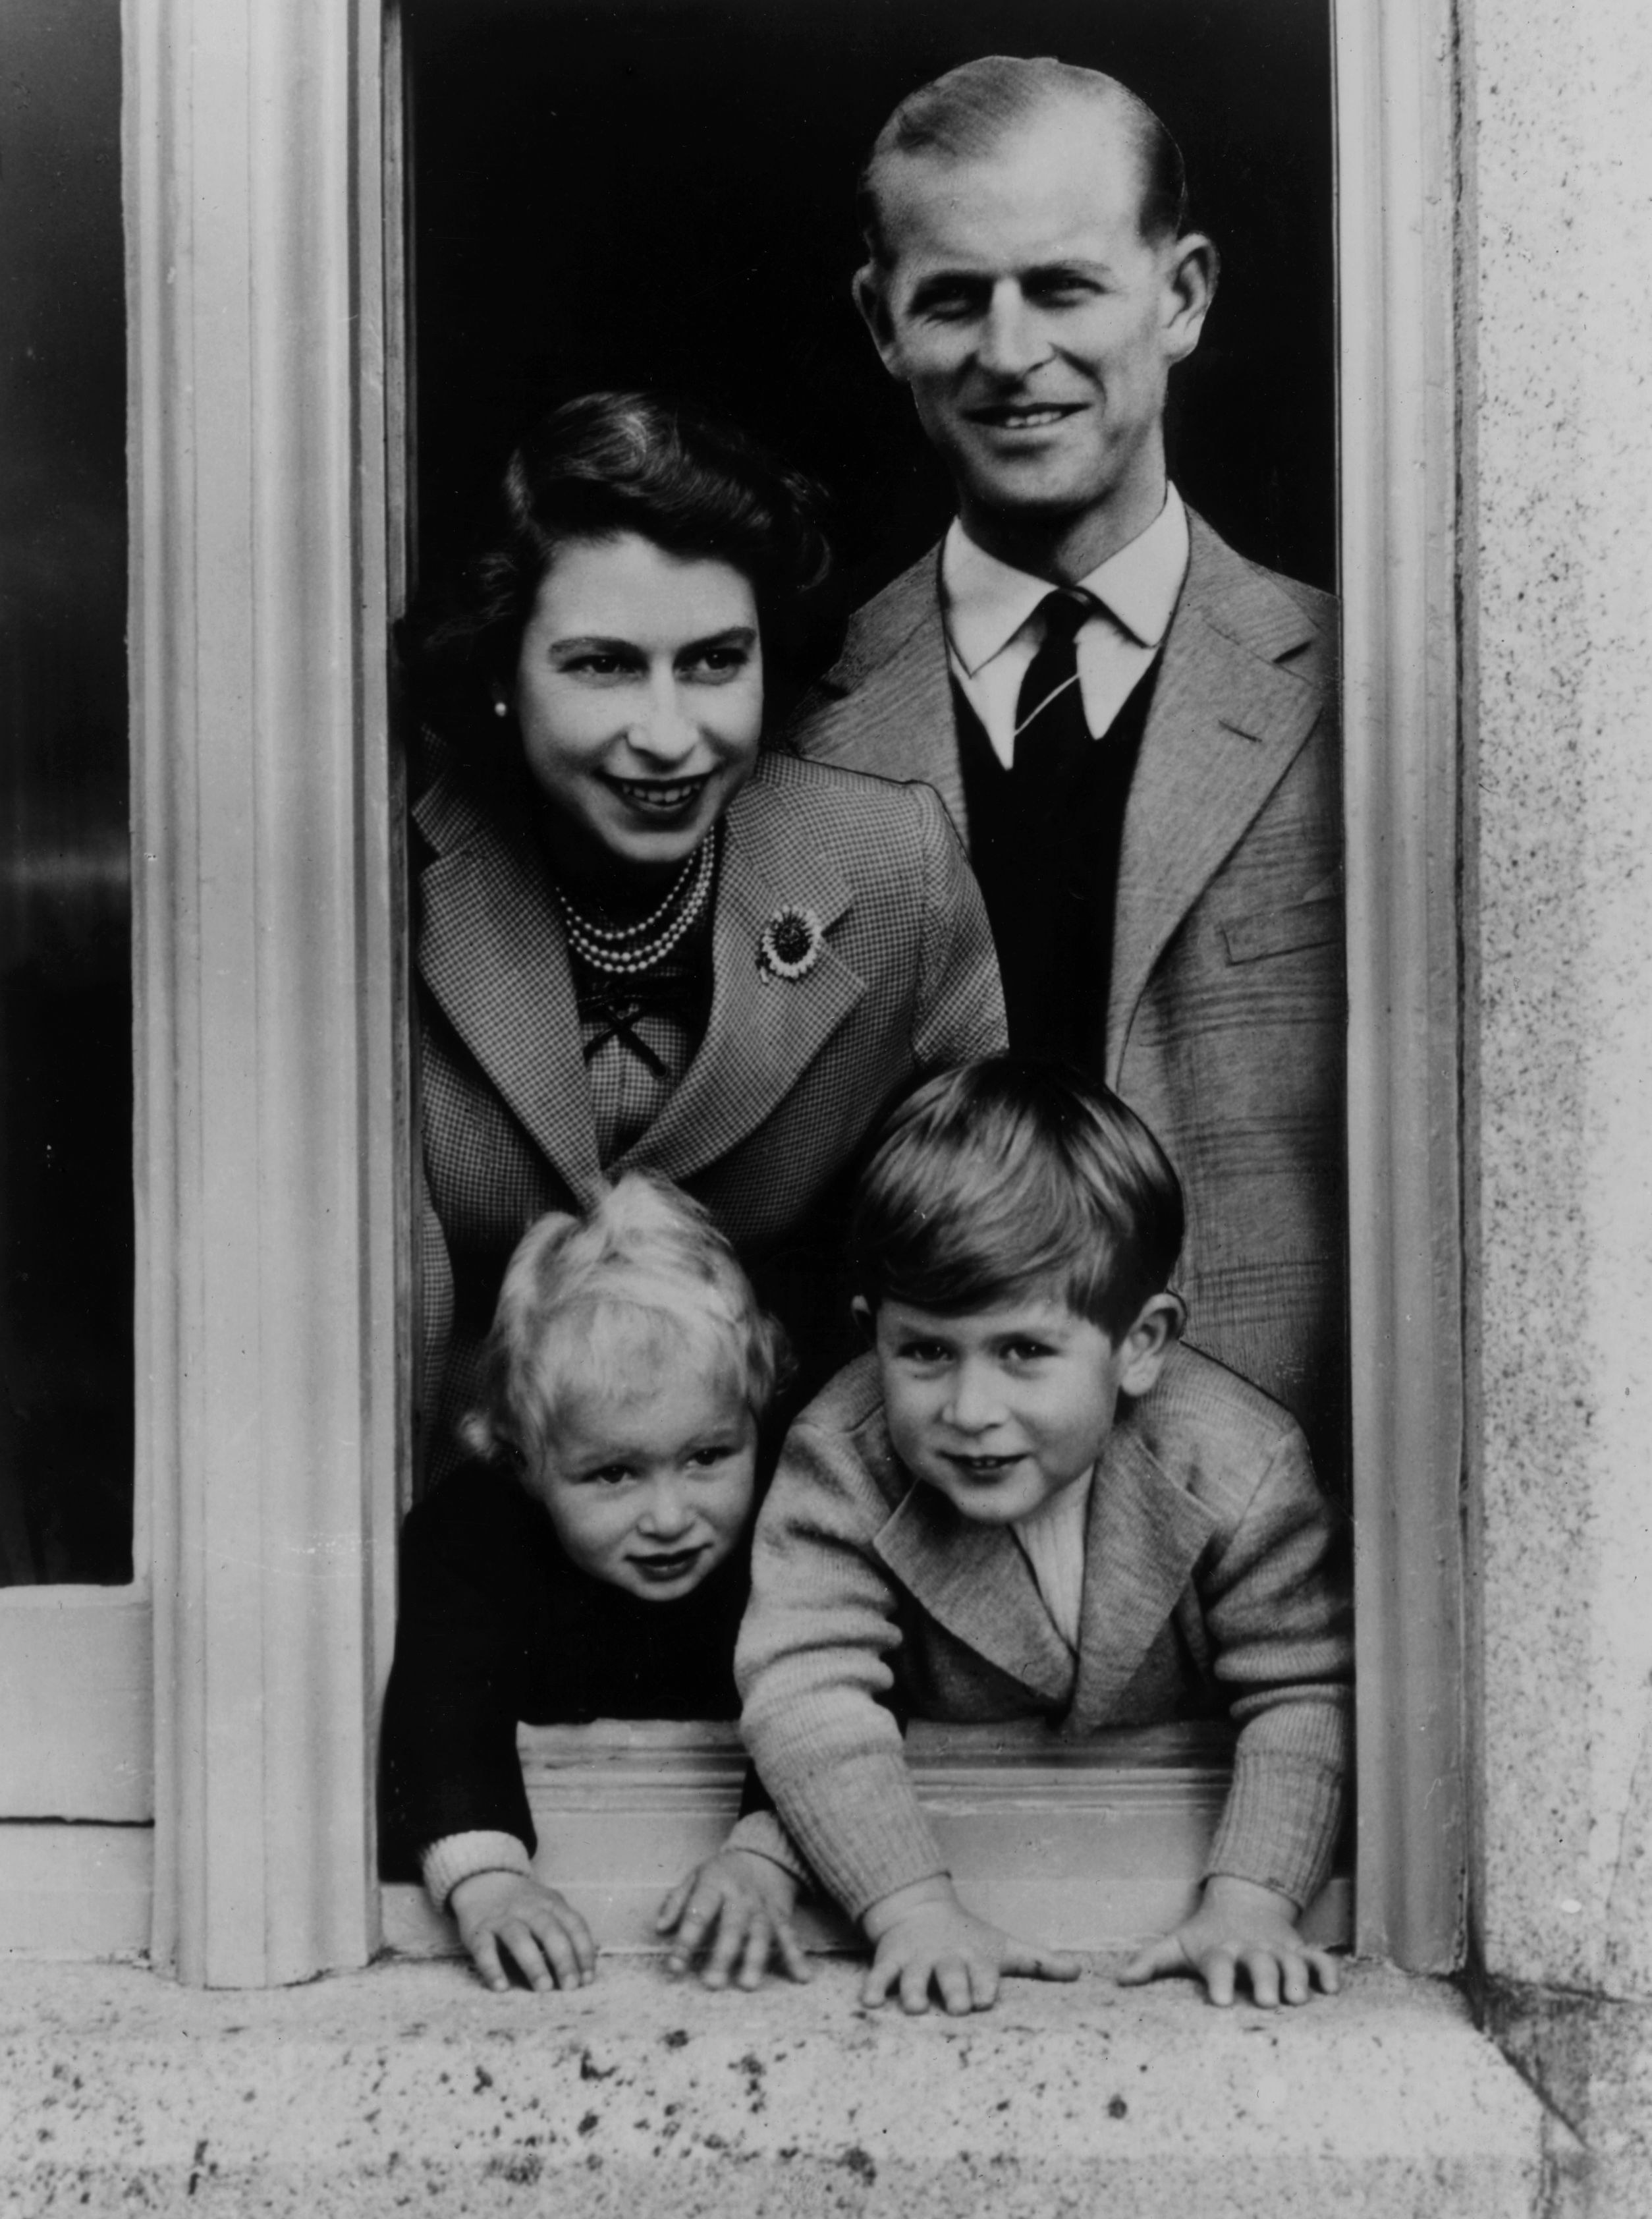 The family stands at a window